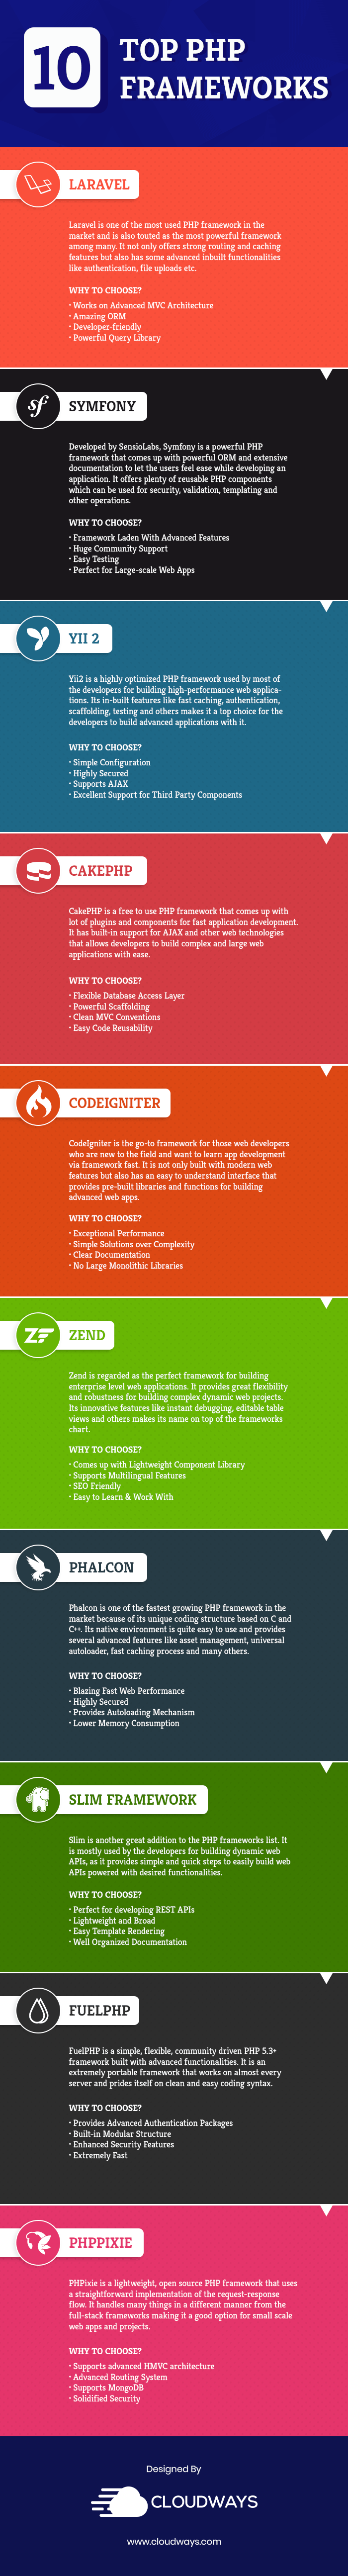 php mvc frameworks infographic